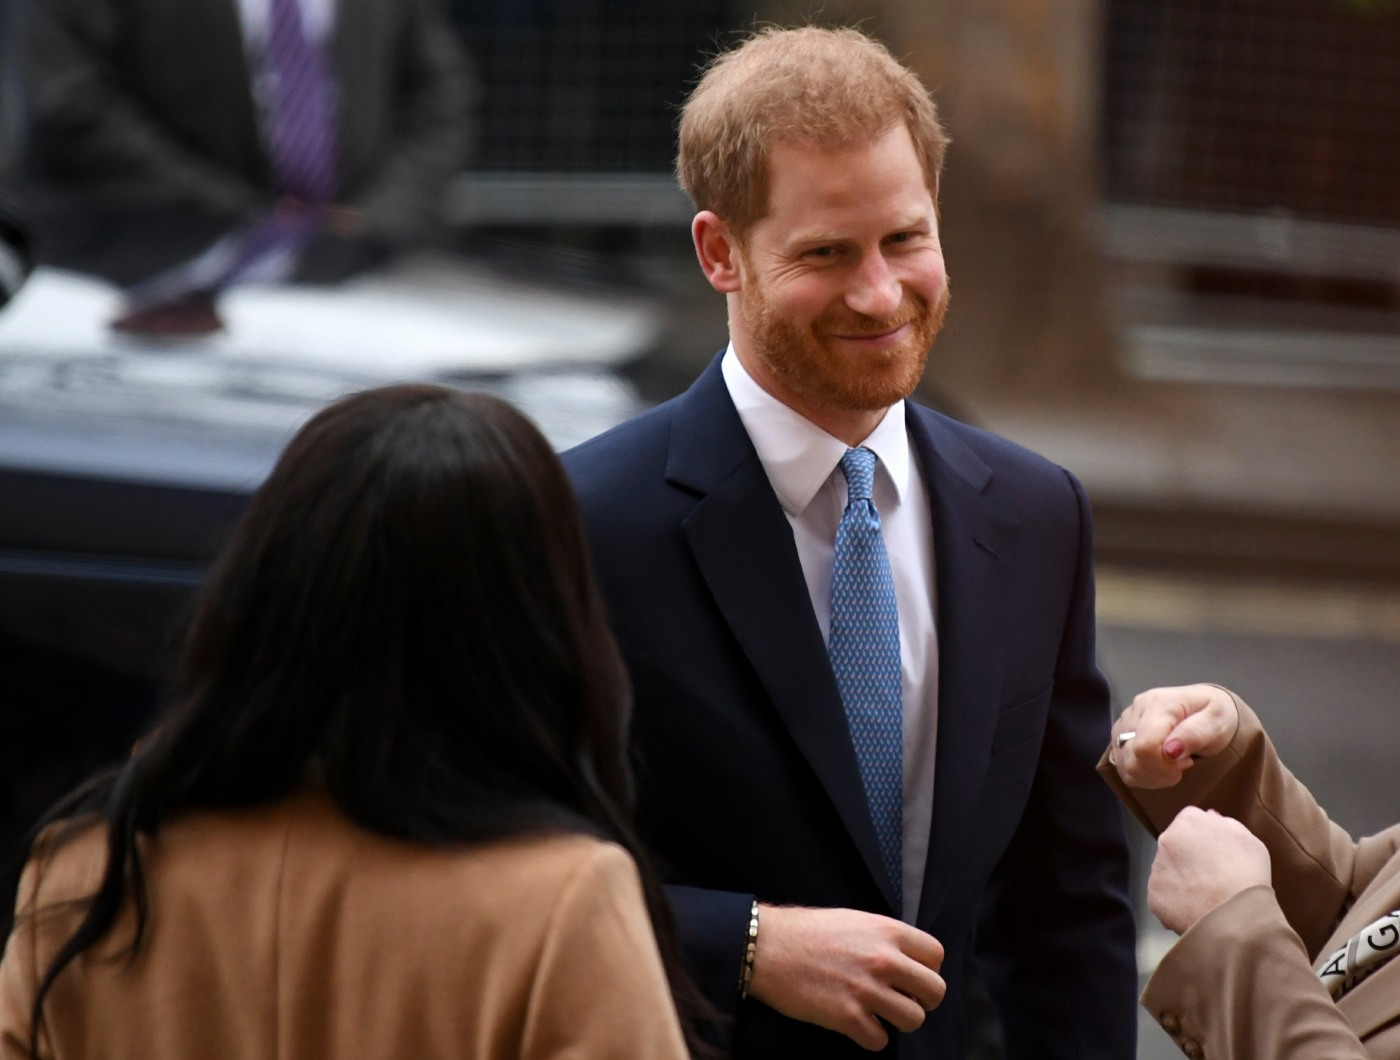 Britain's Meghan, Duchess of Sussex (L) and Britain's Prince Harry, Duke of Sussex (C) react as they arrive to visit Canada House, in London on January 7, 2020, in thanks for the warm Canadian hospitality and support they received during their recent stay